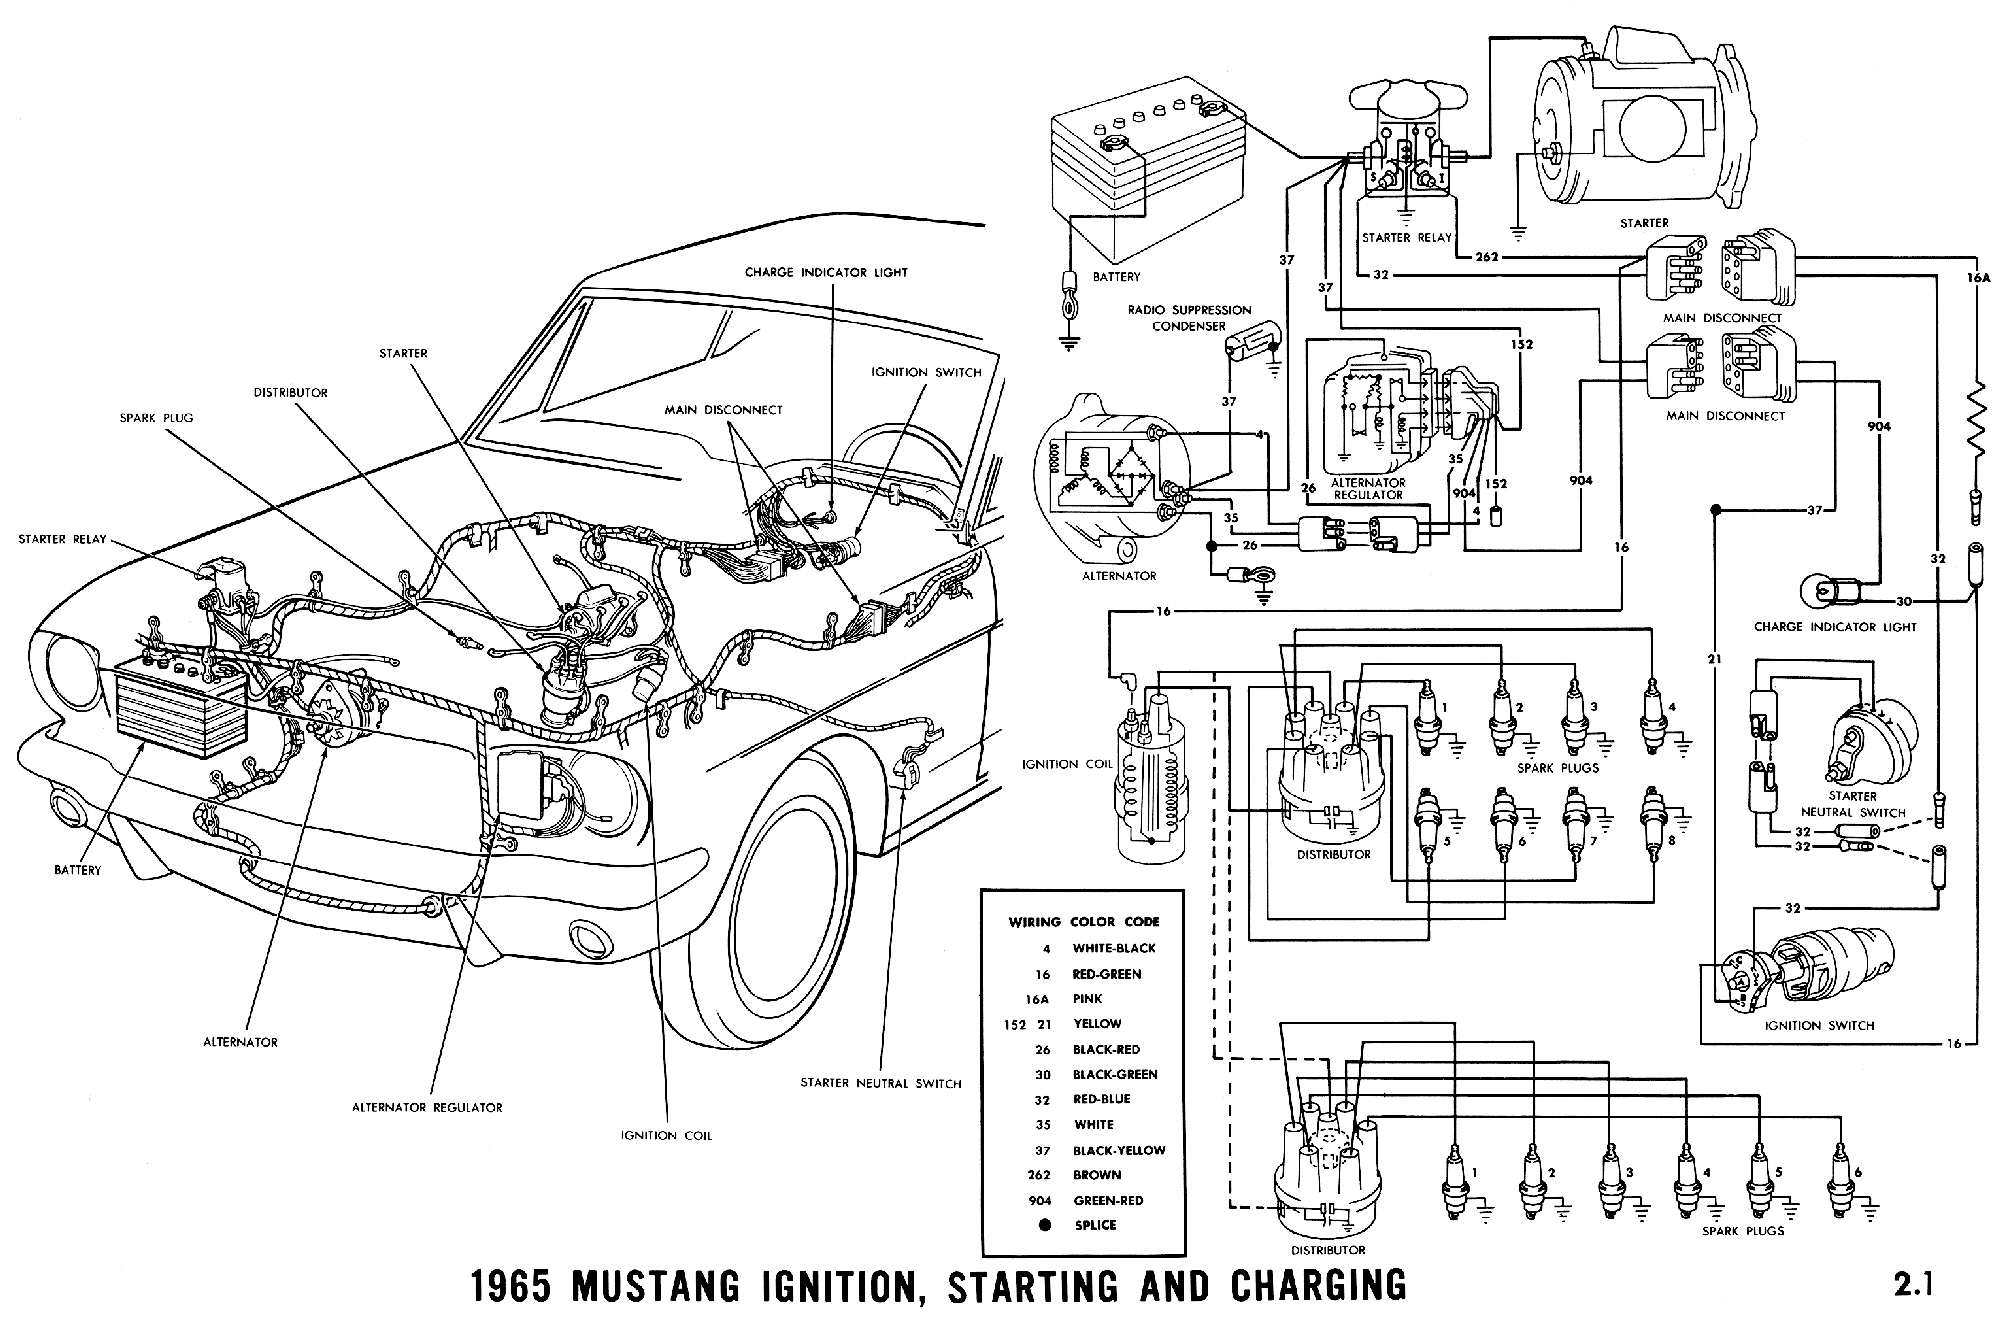 hight resolution of 1965 mustang wiring diagrams average joe restoration 1968 falcon wiring diagram 1965 mustang ignition starting